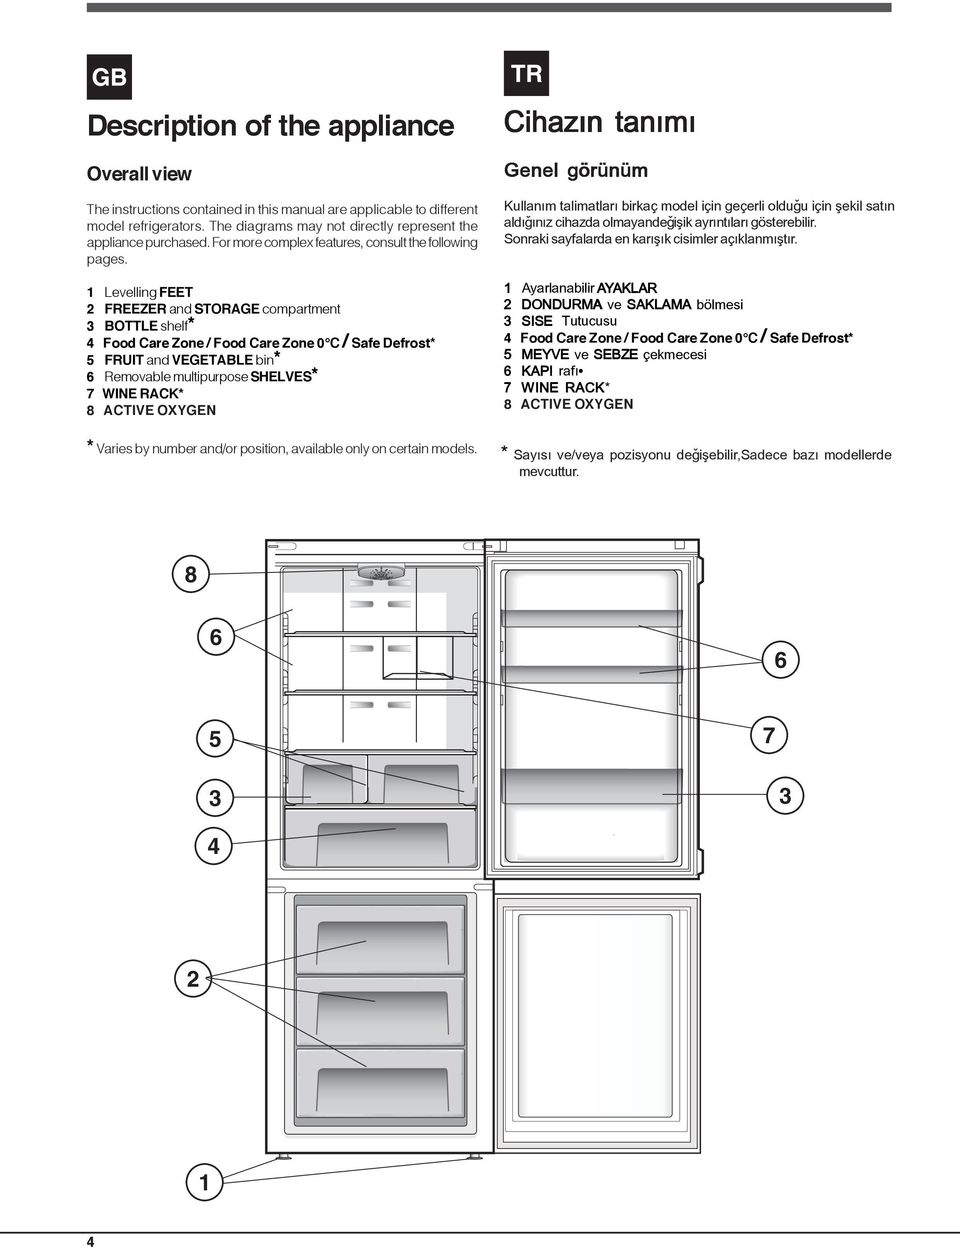 1 Levelling FEET 2 FREEZER and STORAGE compartment 3 BOTTLE shelf* 4 Food Care Zone / Food Care Zone 0 C / Safe Defrost* 5 FRUIT and VEGETABLE bin* 6 Removable multipurpose SHELVES* 7 WINE RACK* 8